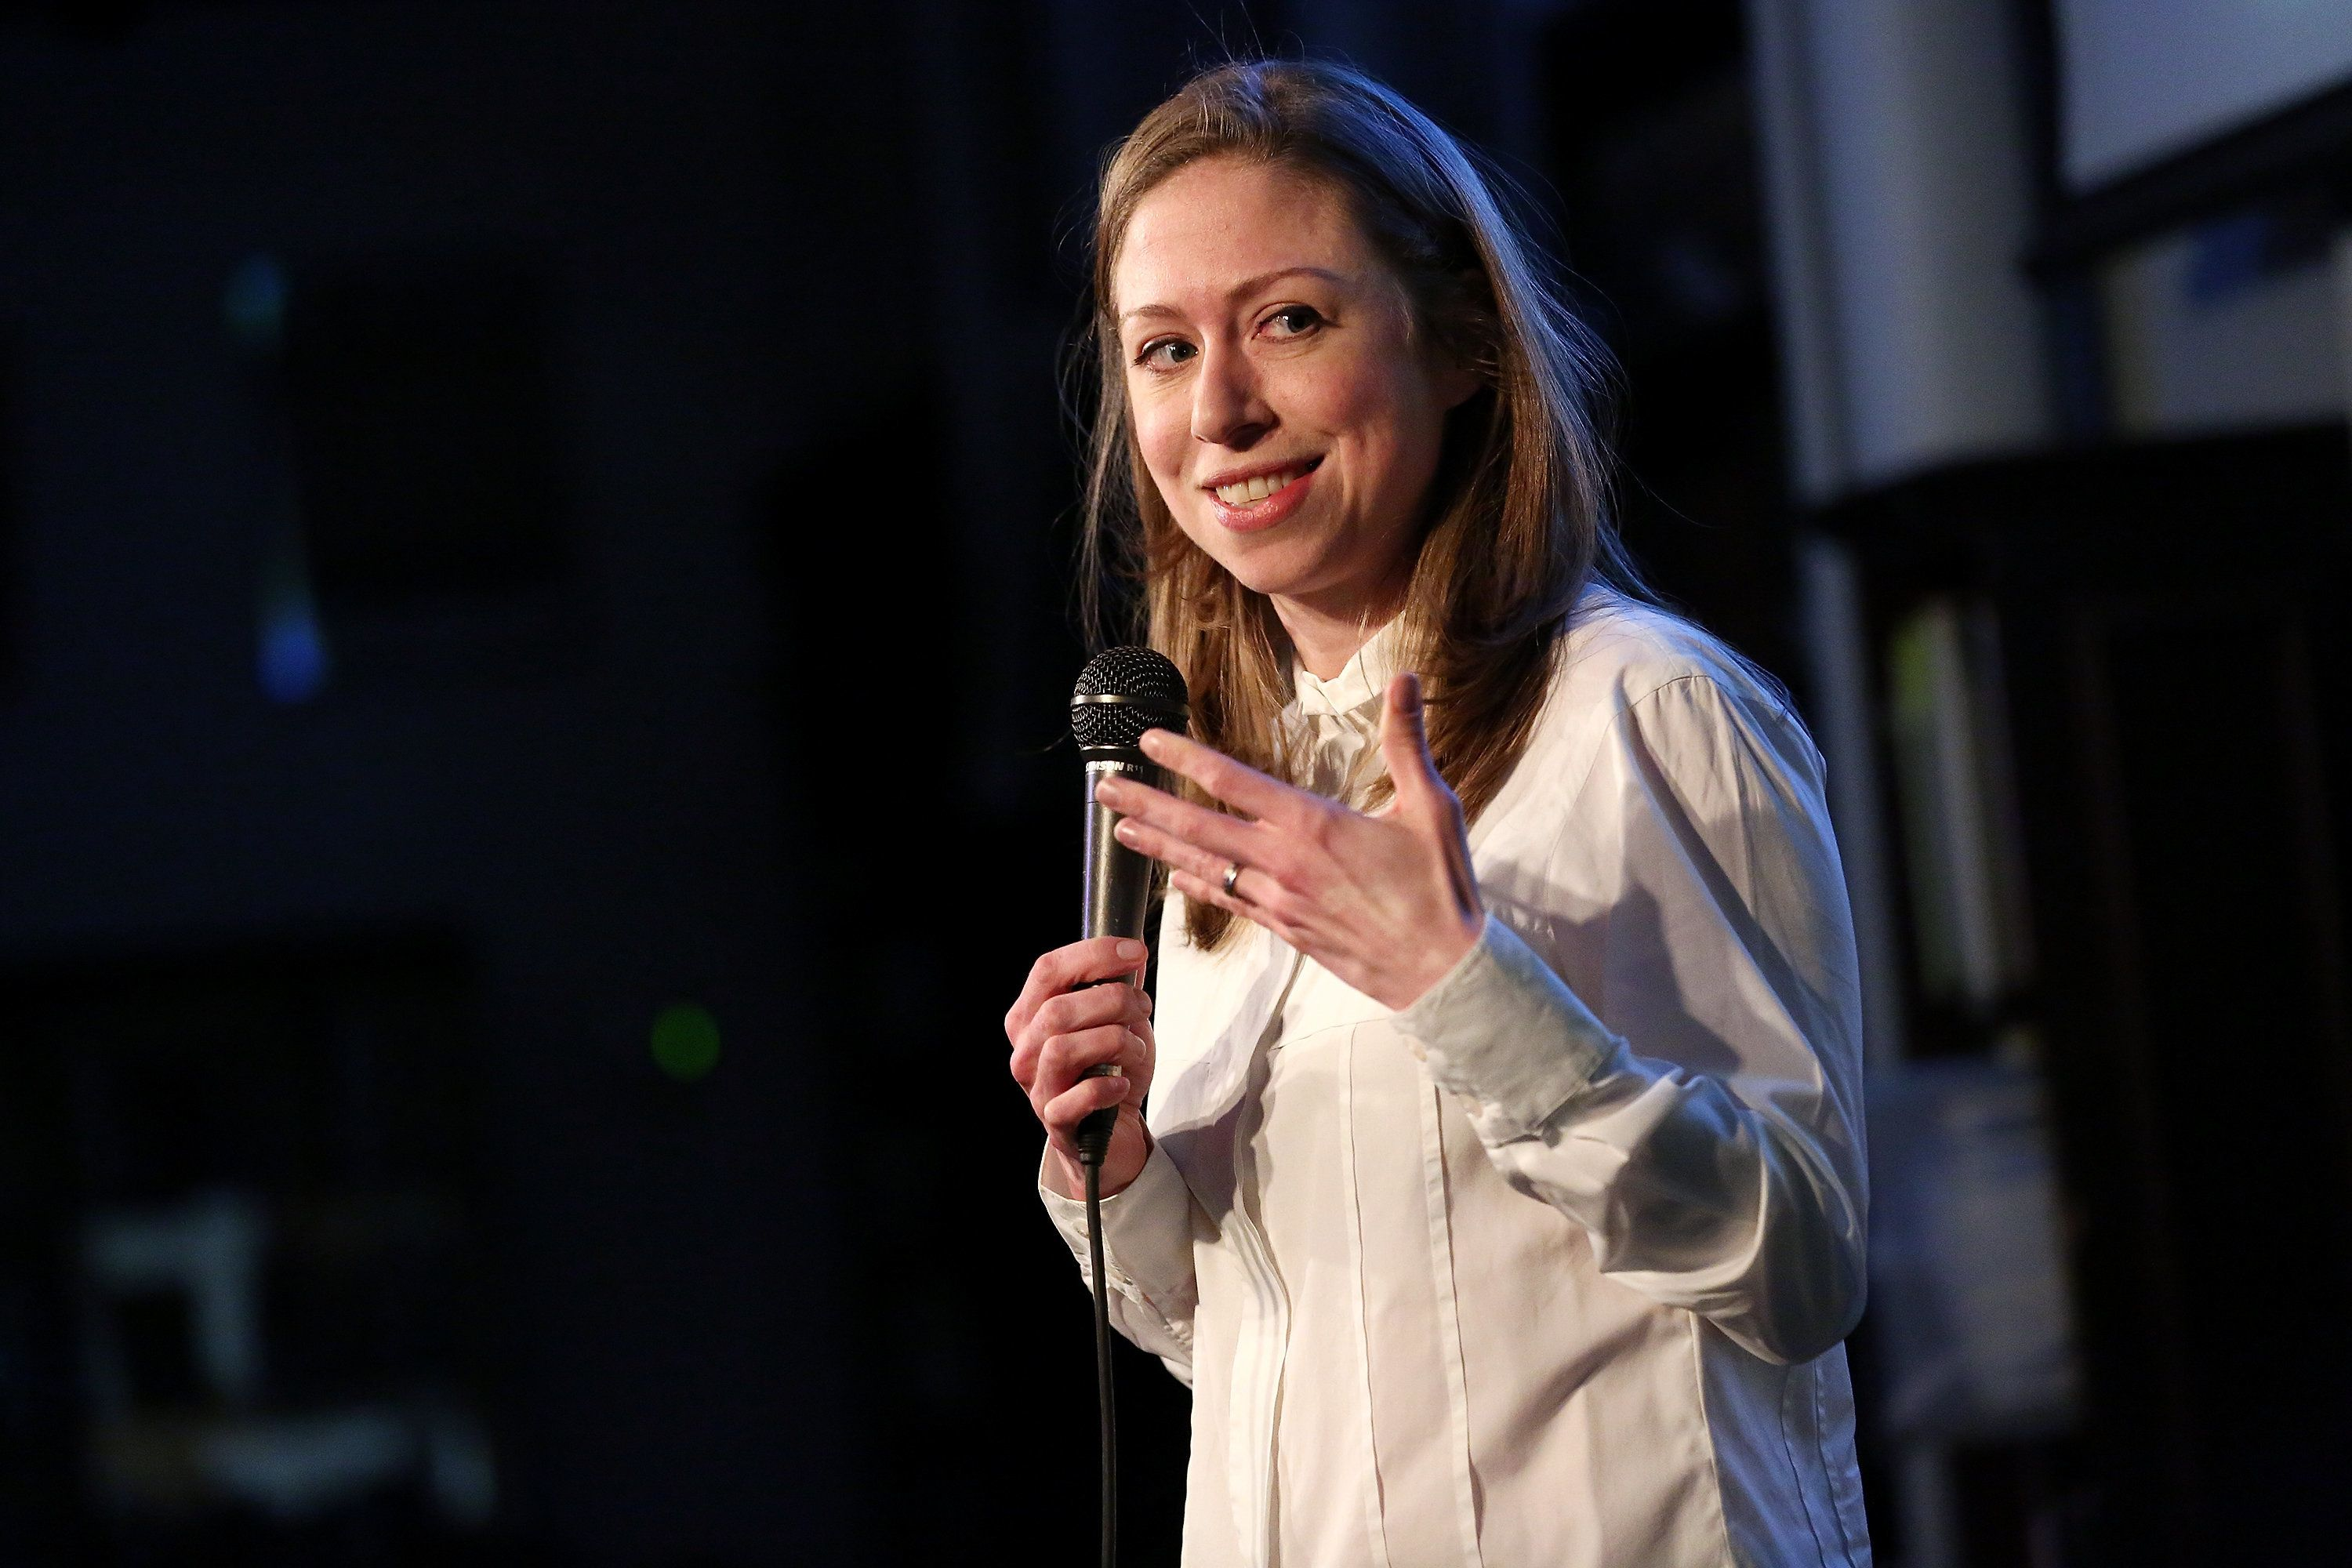 In an essay for Well+Good, Chelsea Clinton wrote about the importance of normalizing menstruation and breastfeeding.